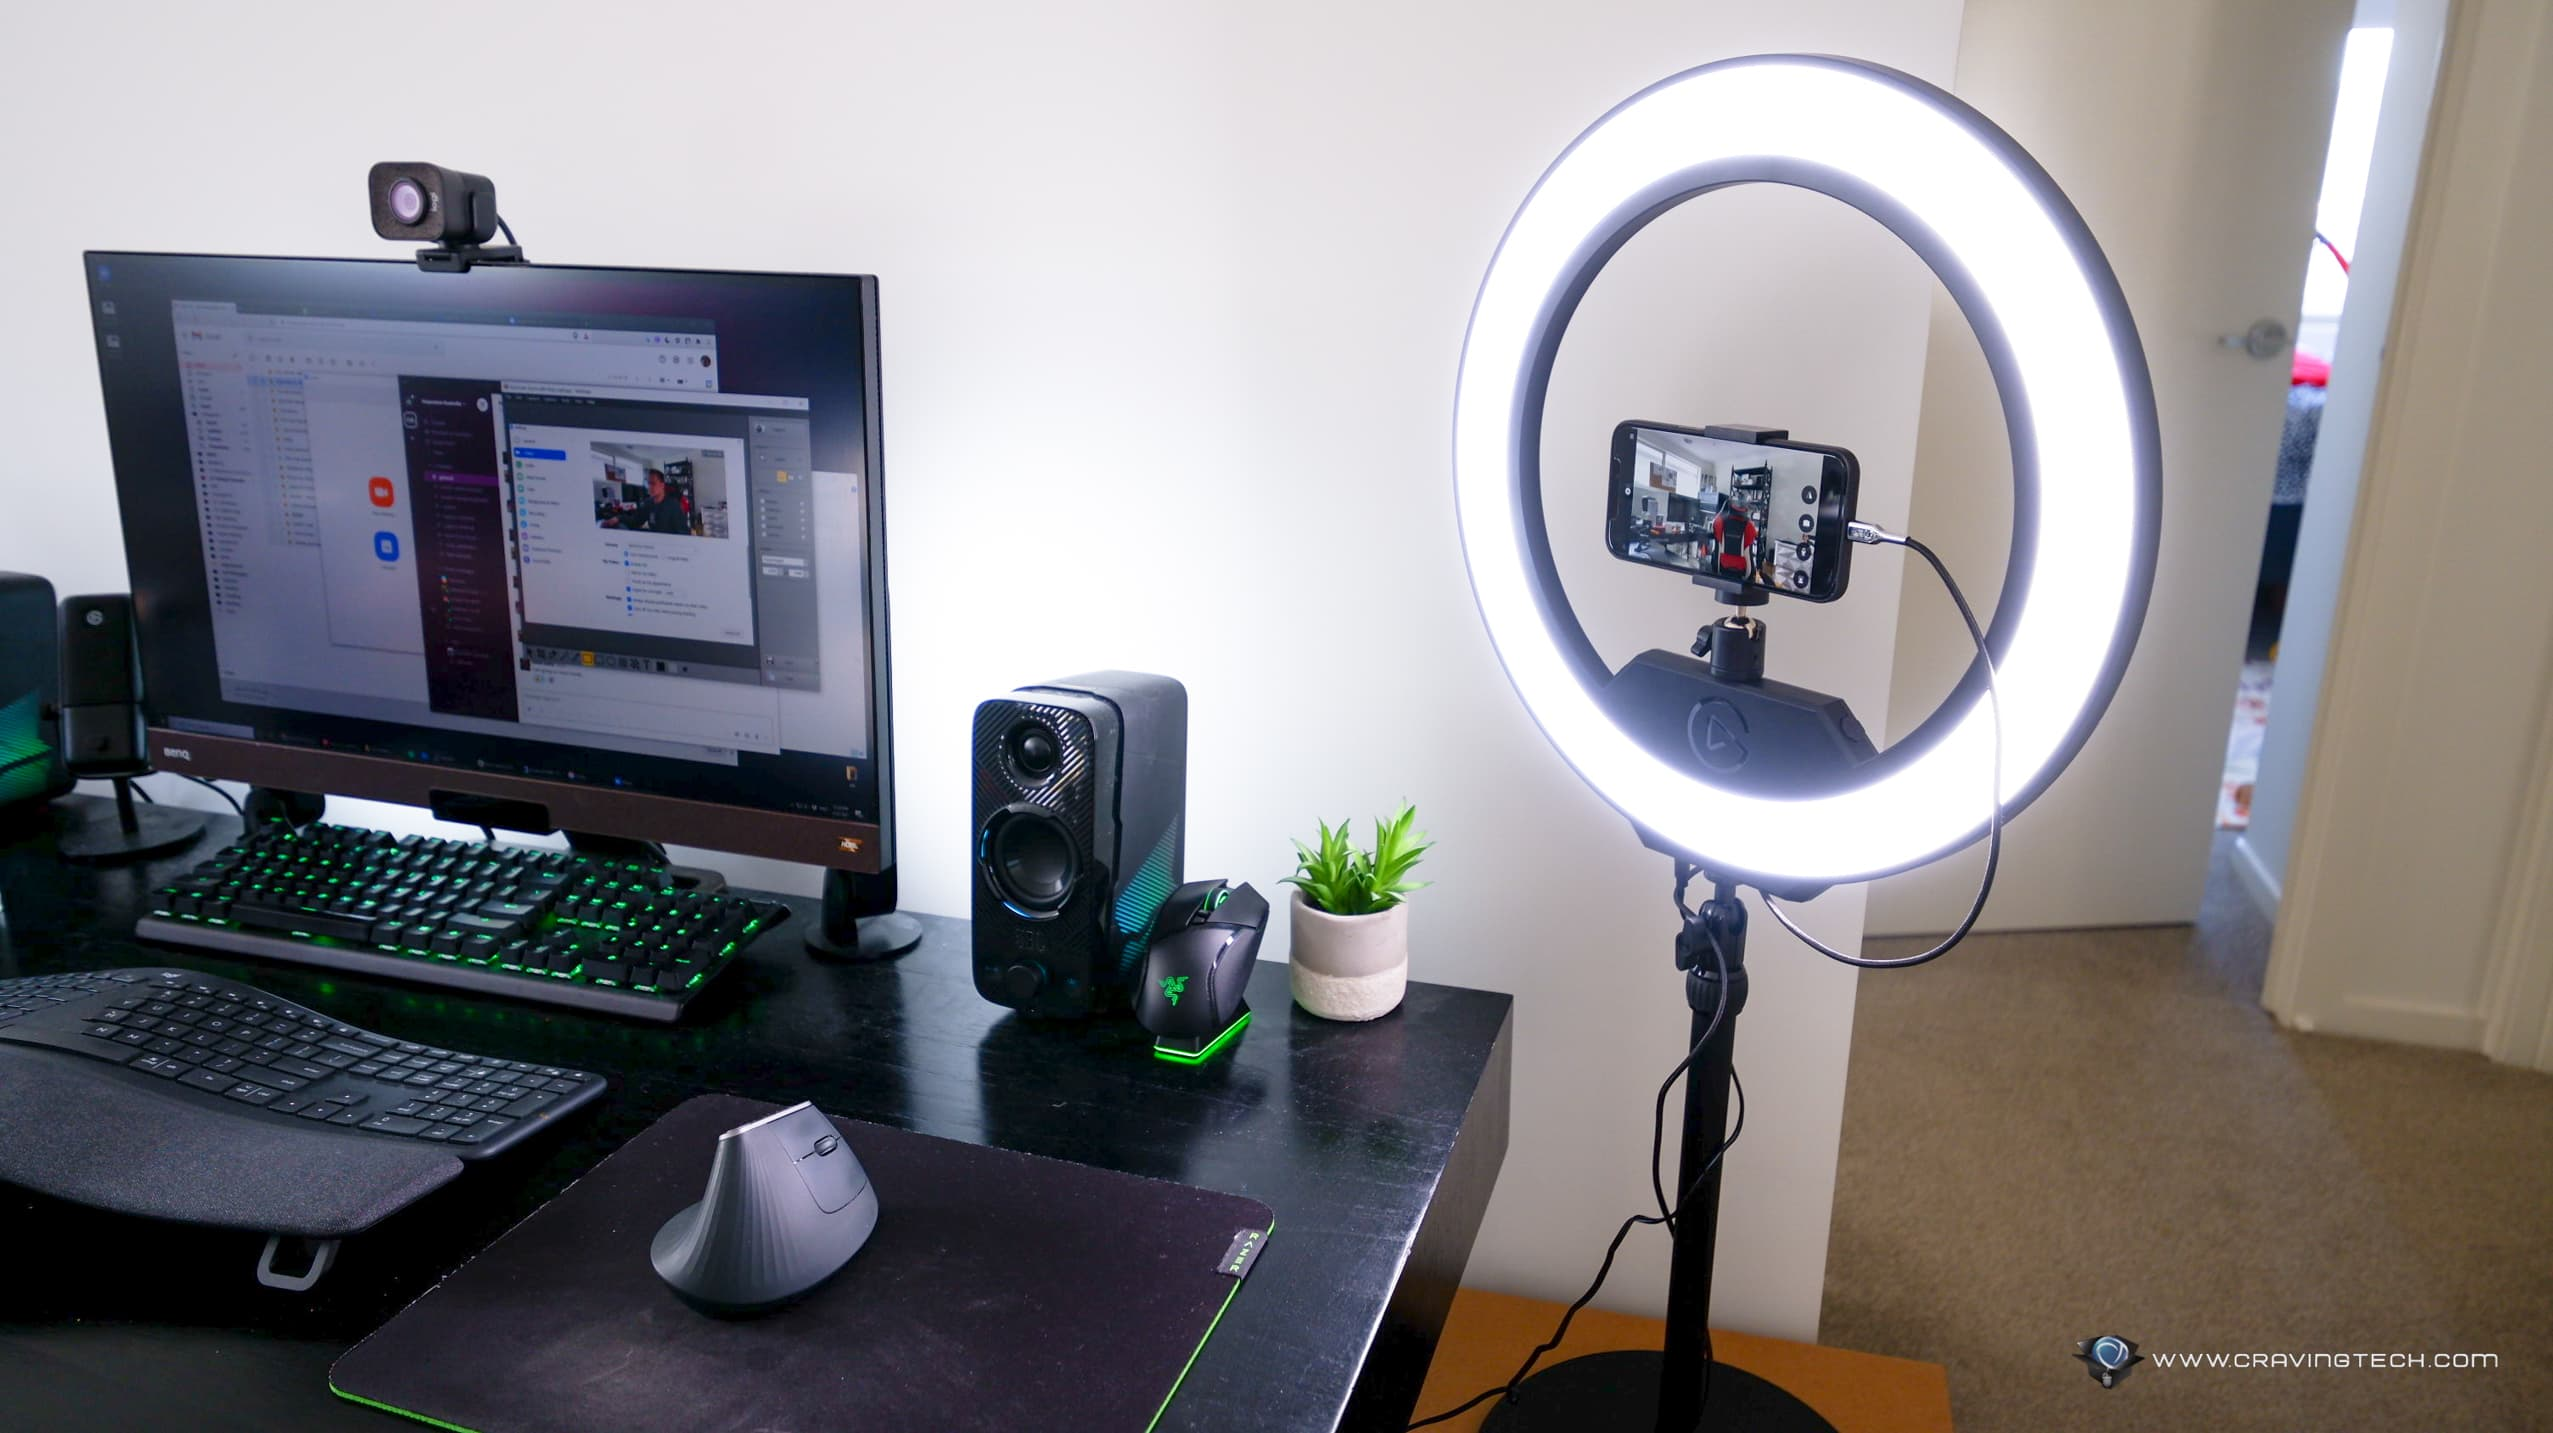 How to use your phone as a webcam easily with EpocCam